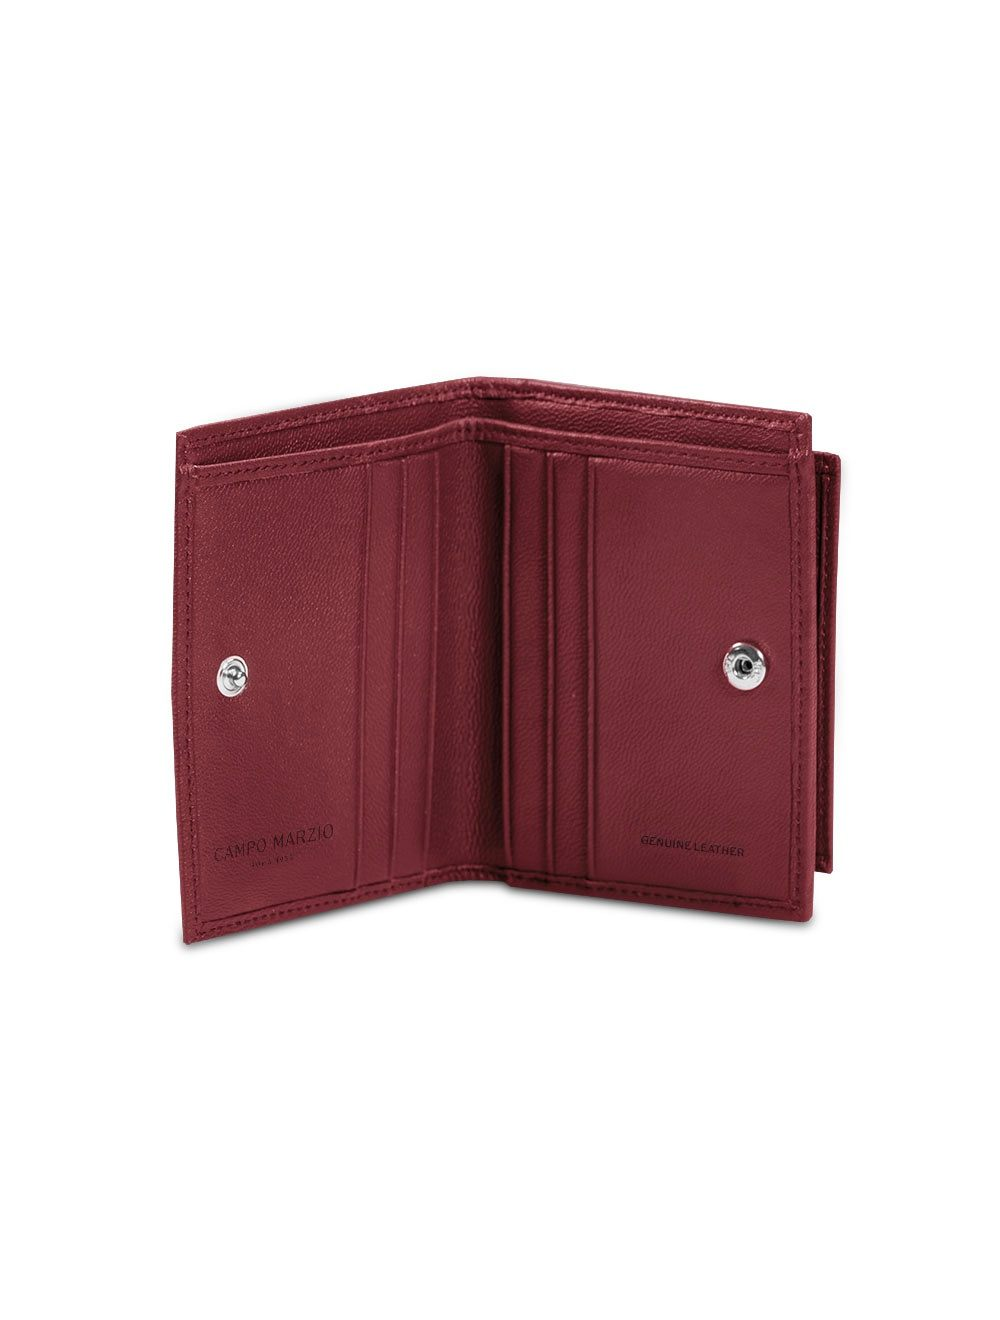 Pocket Coin Wallet - Cherry Red